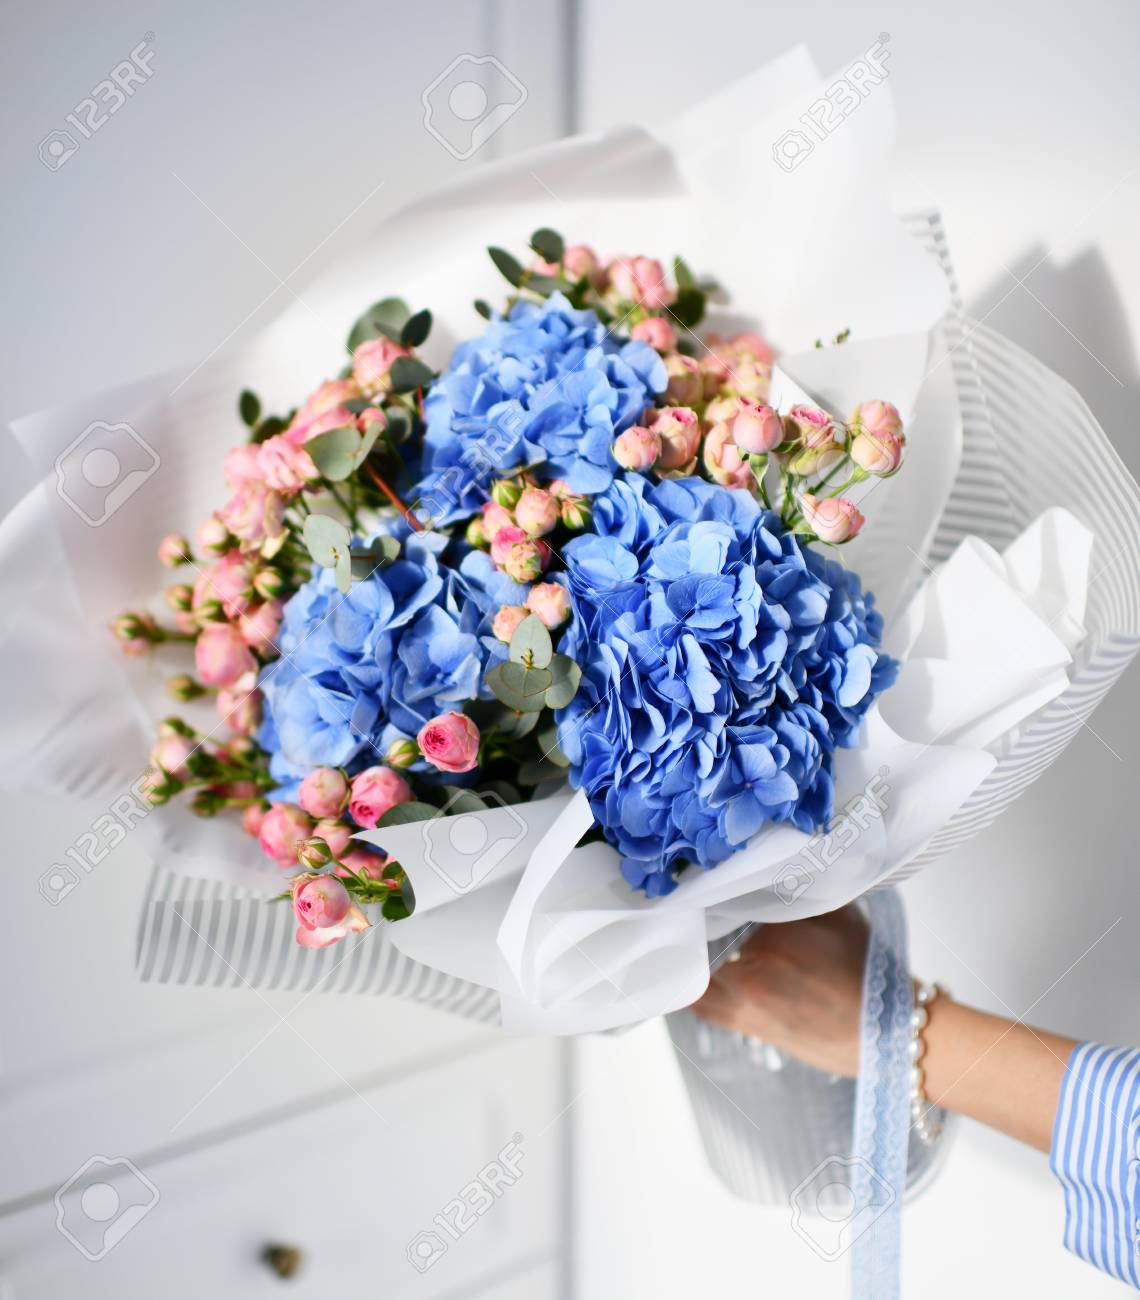 Woman Hand Hold Bouquet Of Blue Hydrangea Flowers And Pink Roses Stock Photo Picture And Royalty Free Image Image 101183518